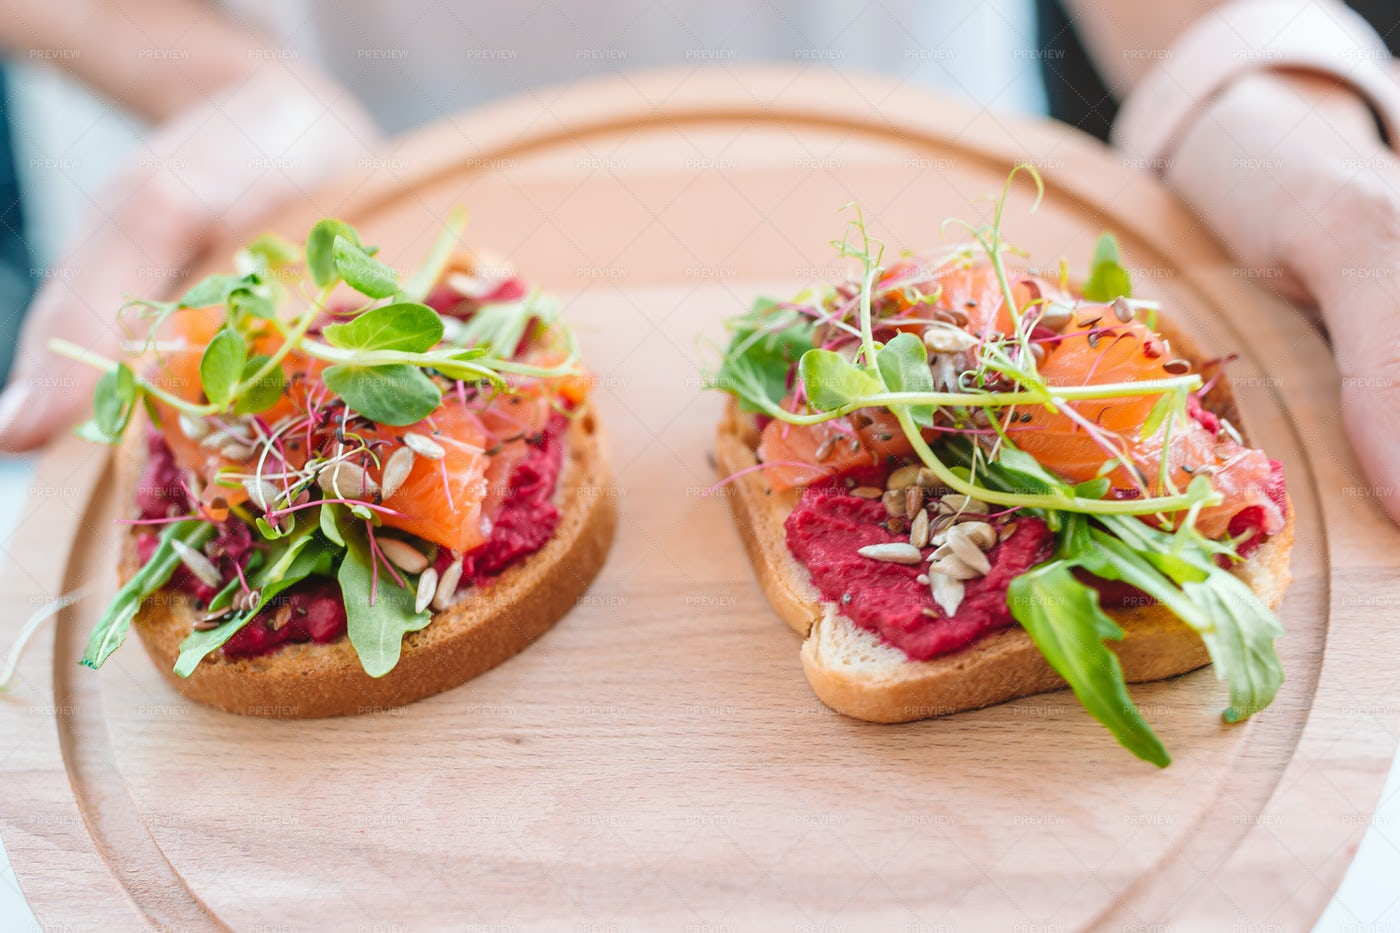 Red Hummus And Salmon On Bread: Stock Photos